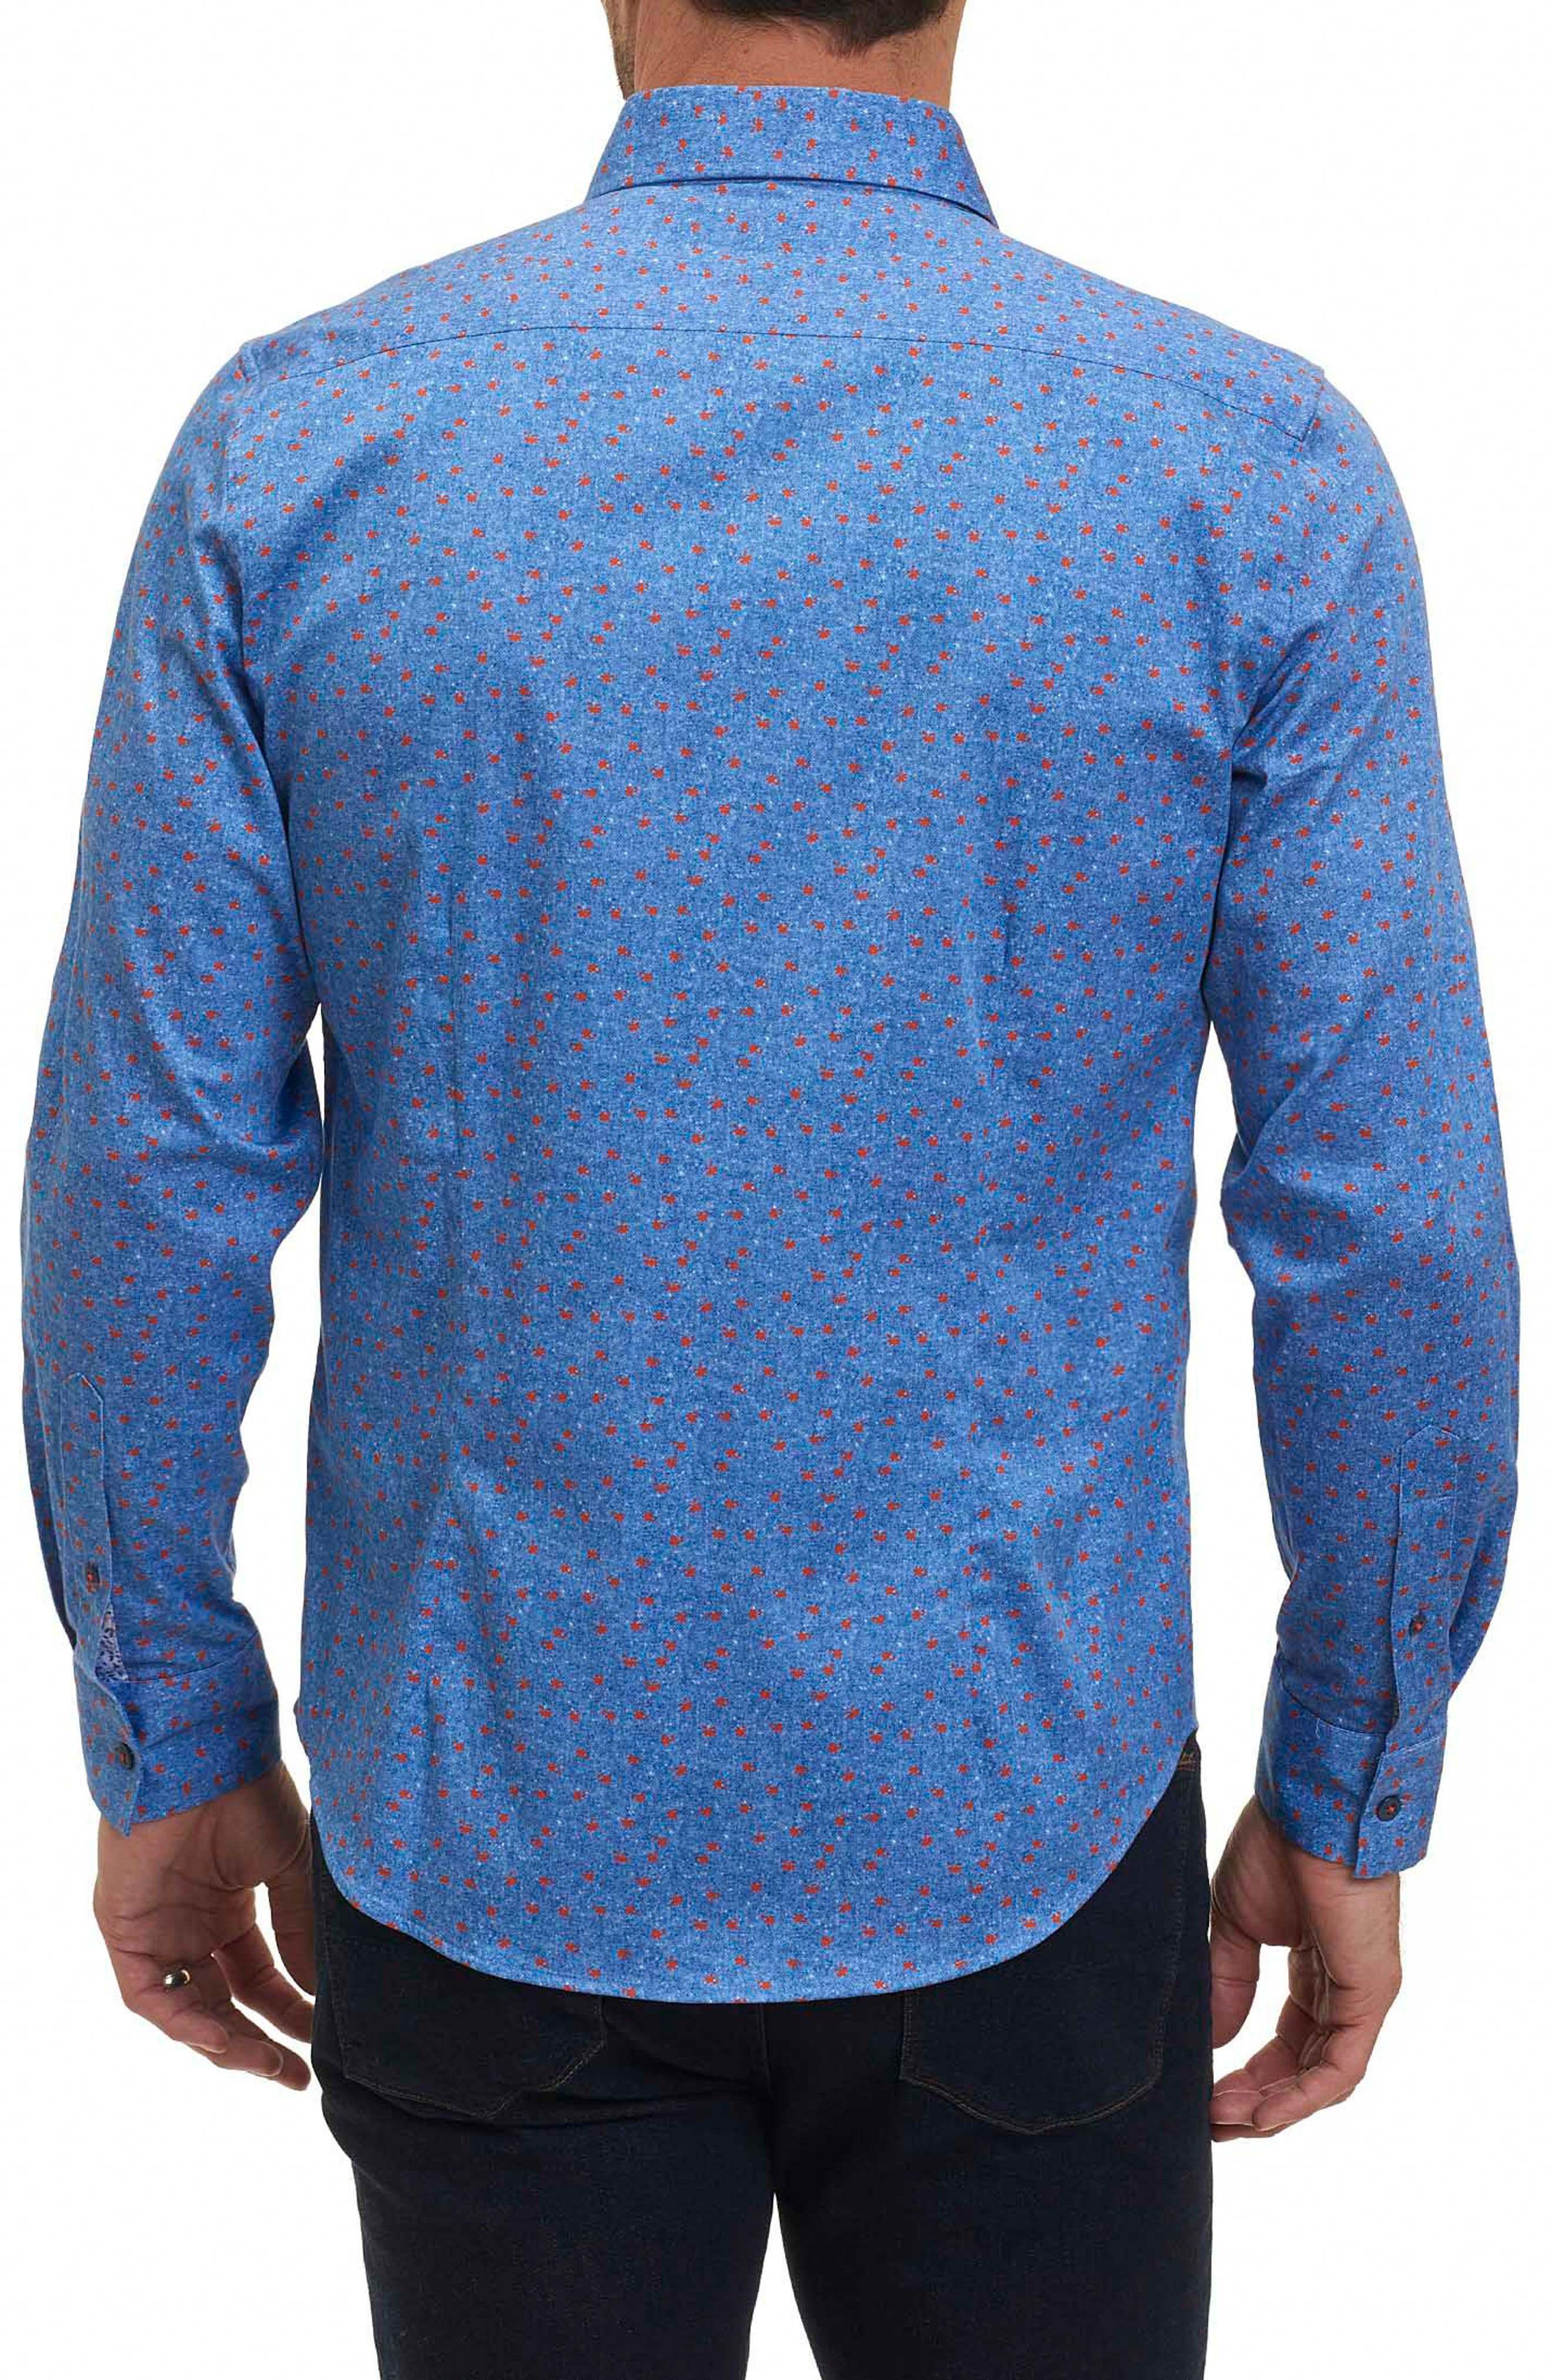 Zander Tailored Fit Sport Shirt,                             Alternate thumbnail 2, color,                             Blue